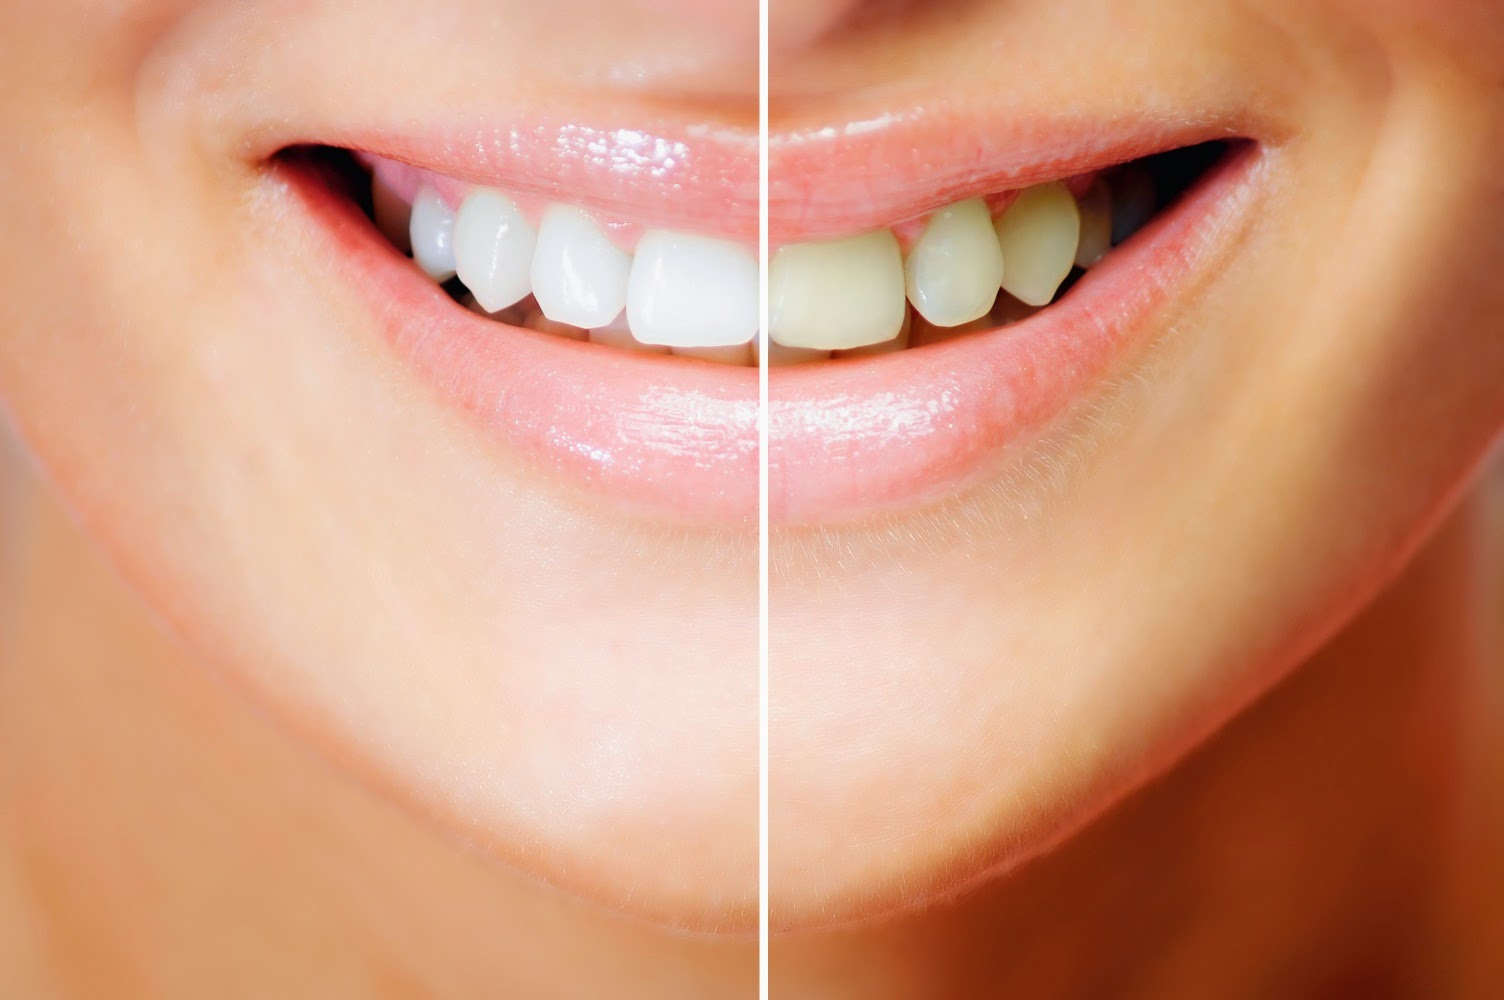 3 Natural Ways to Whiten Your Teeth at Home